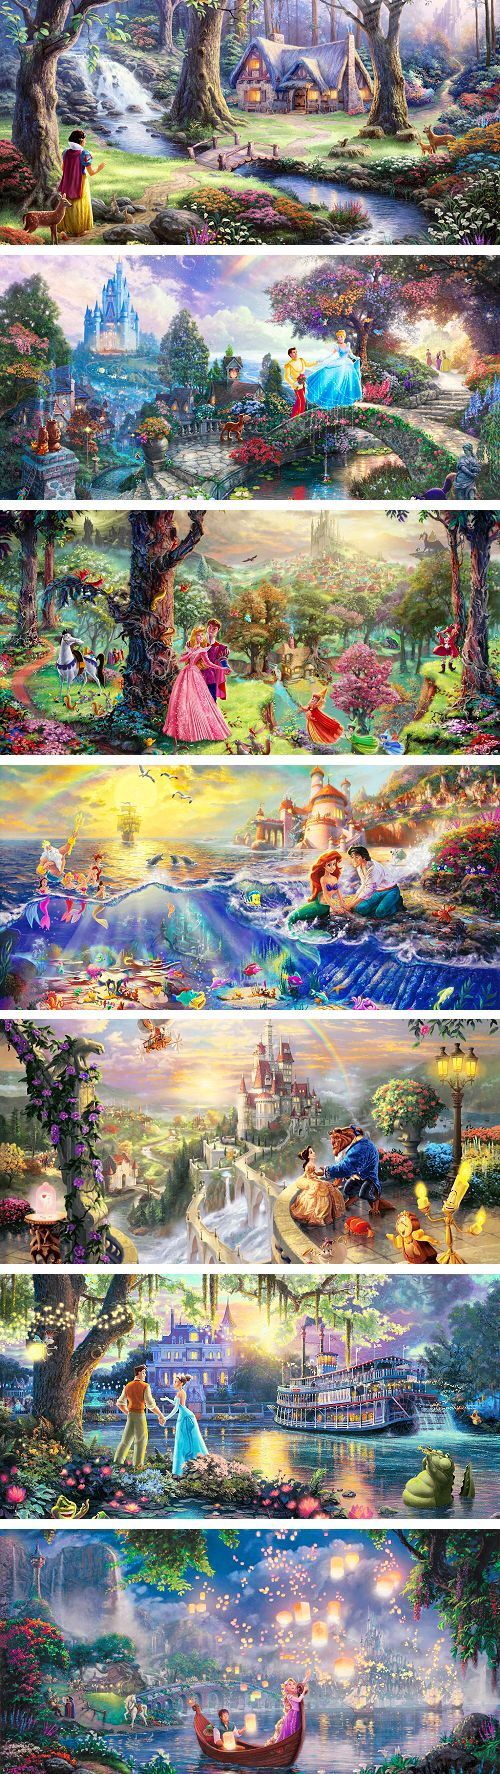 Photo of Are You The Updated Or Original Version Of The Disney Princesses?